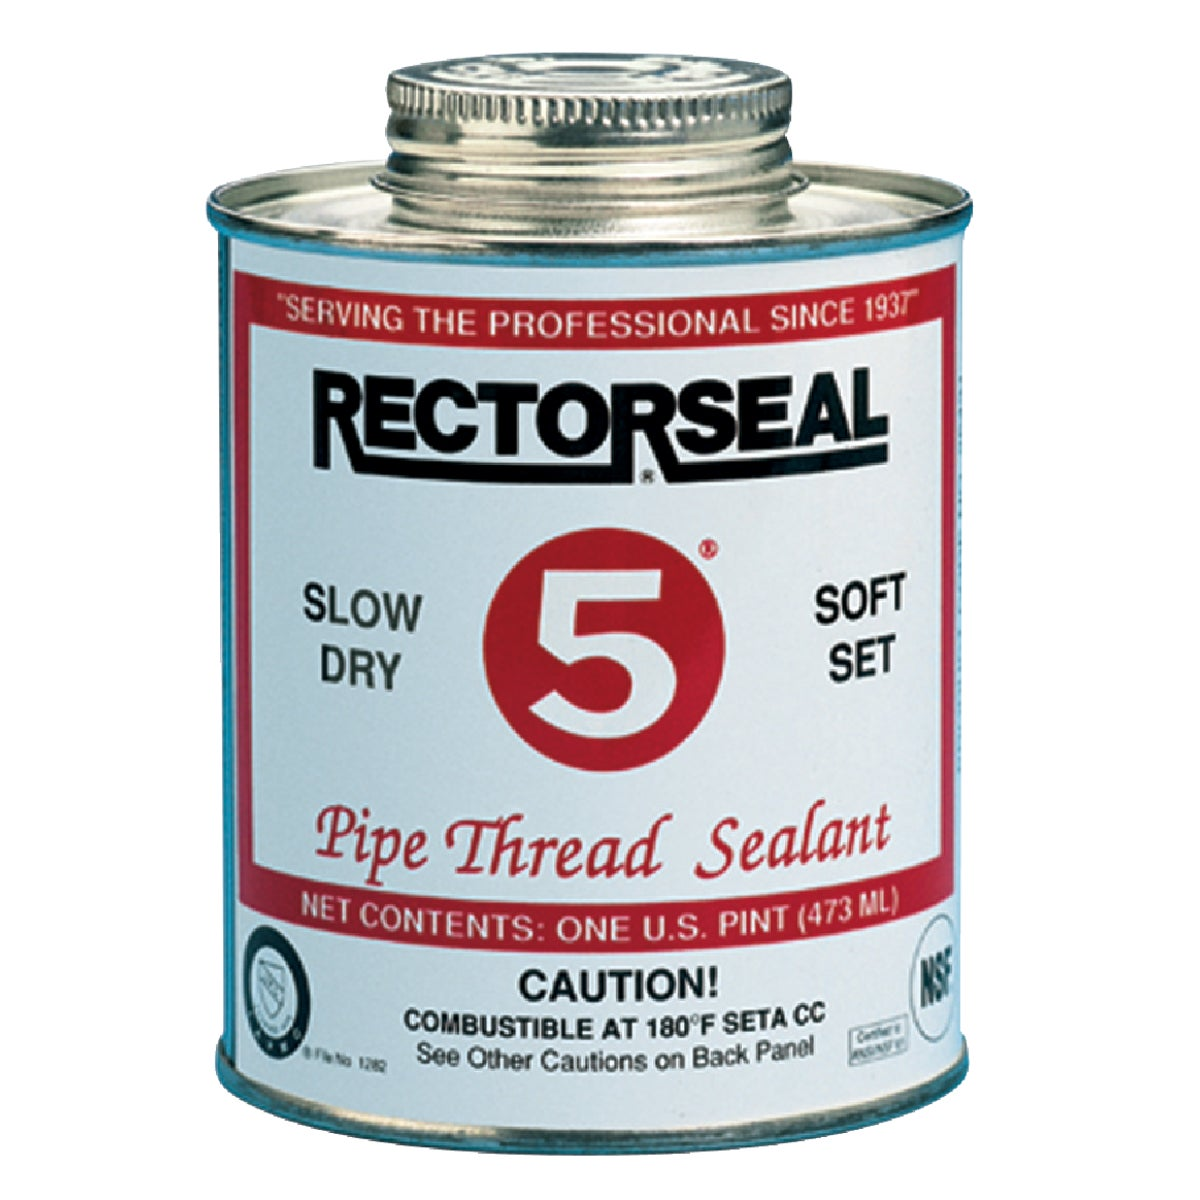 1/4PT PIPE THRD SEALANT - 25631 by Rectorseal Corp